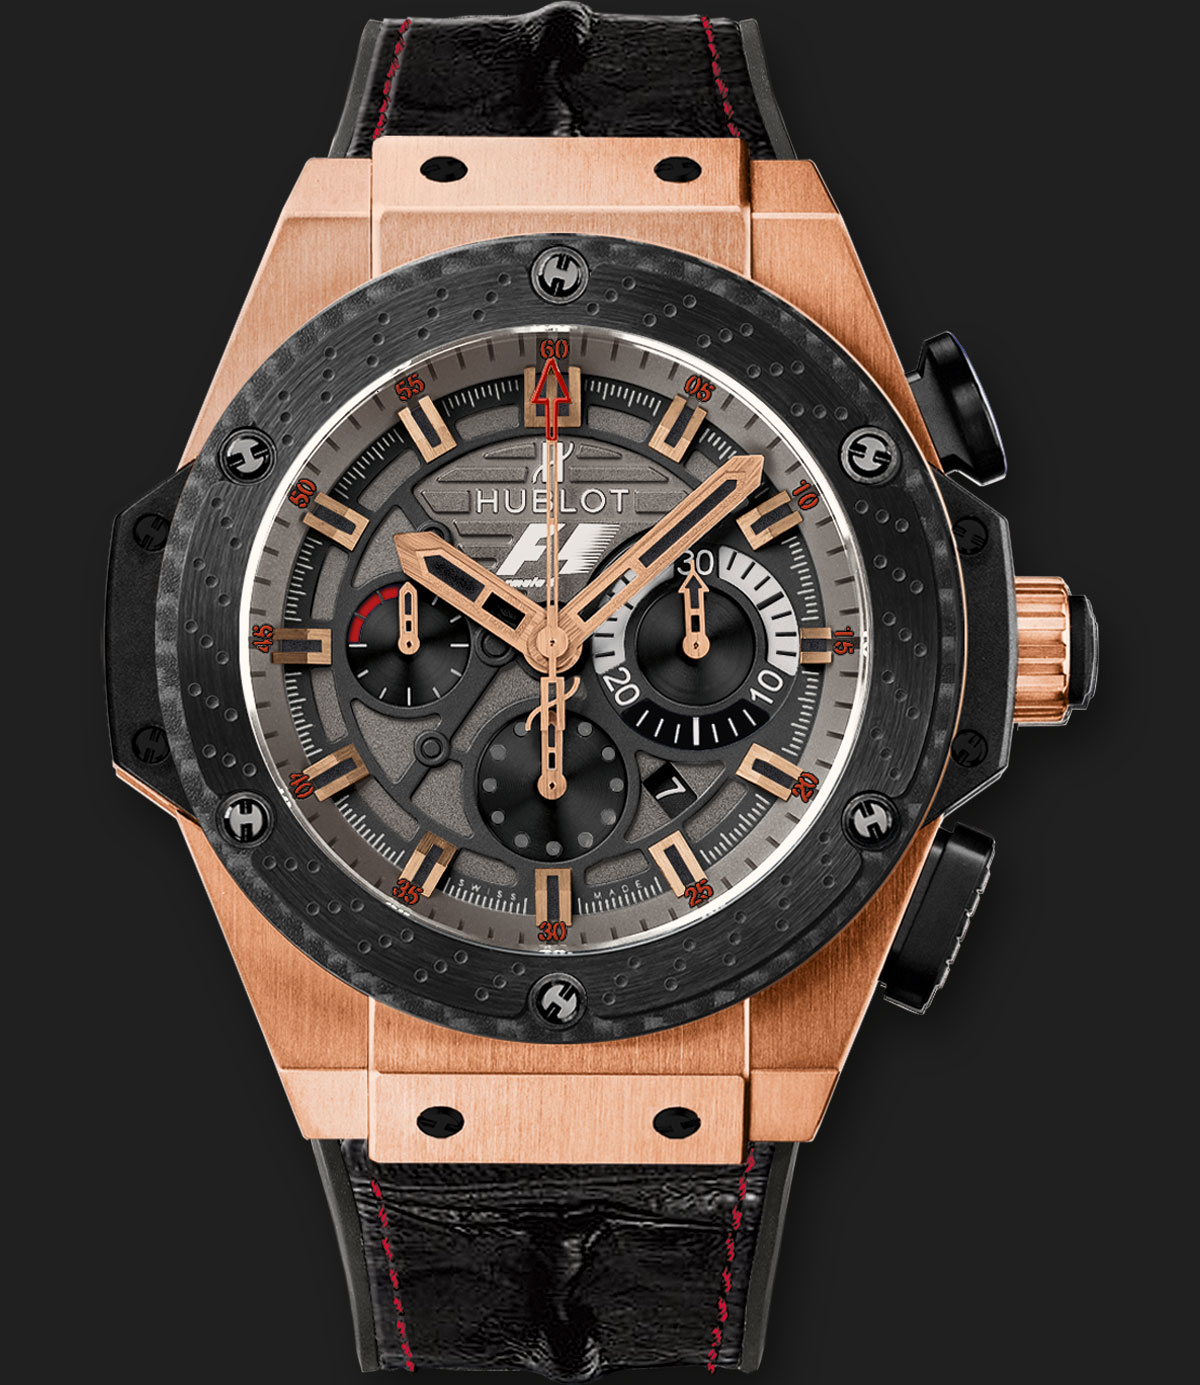 2016 Hublot Watches price list